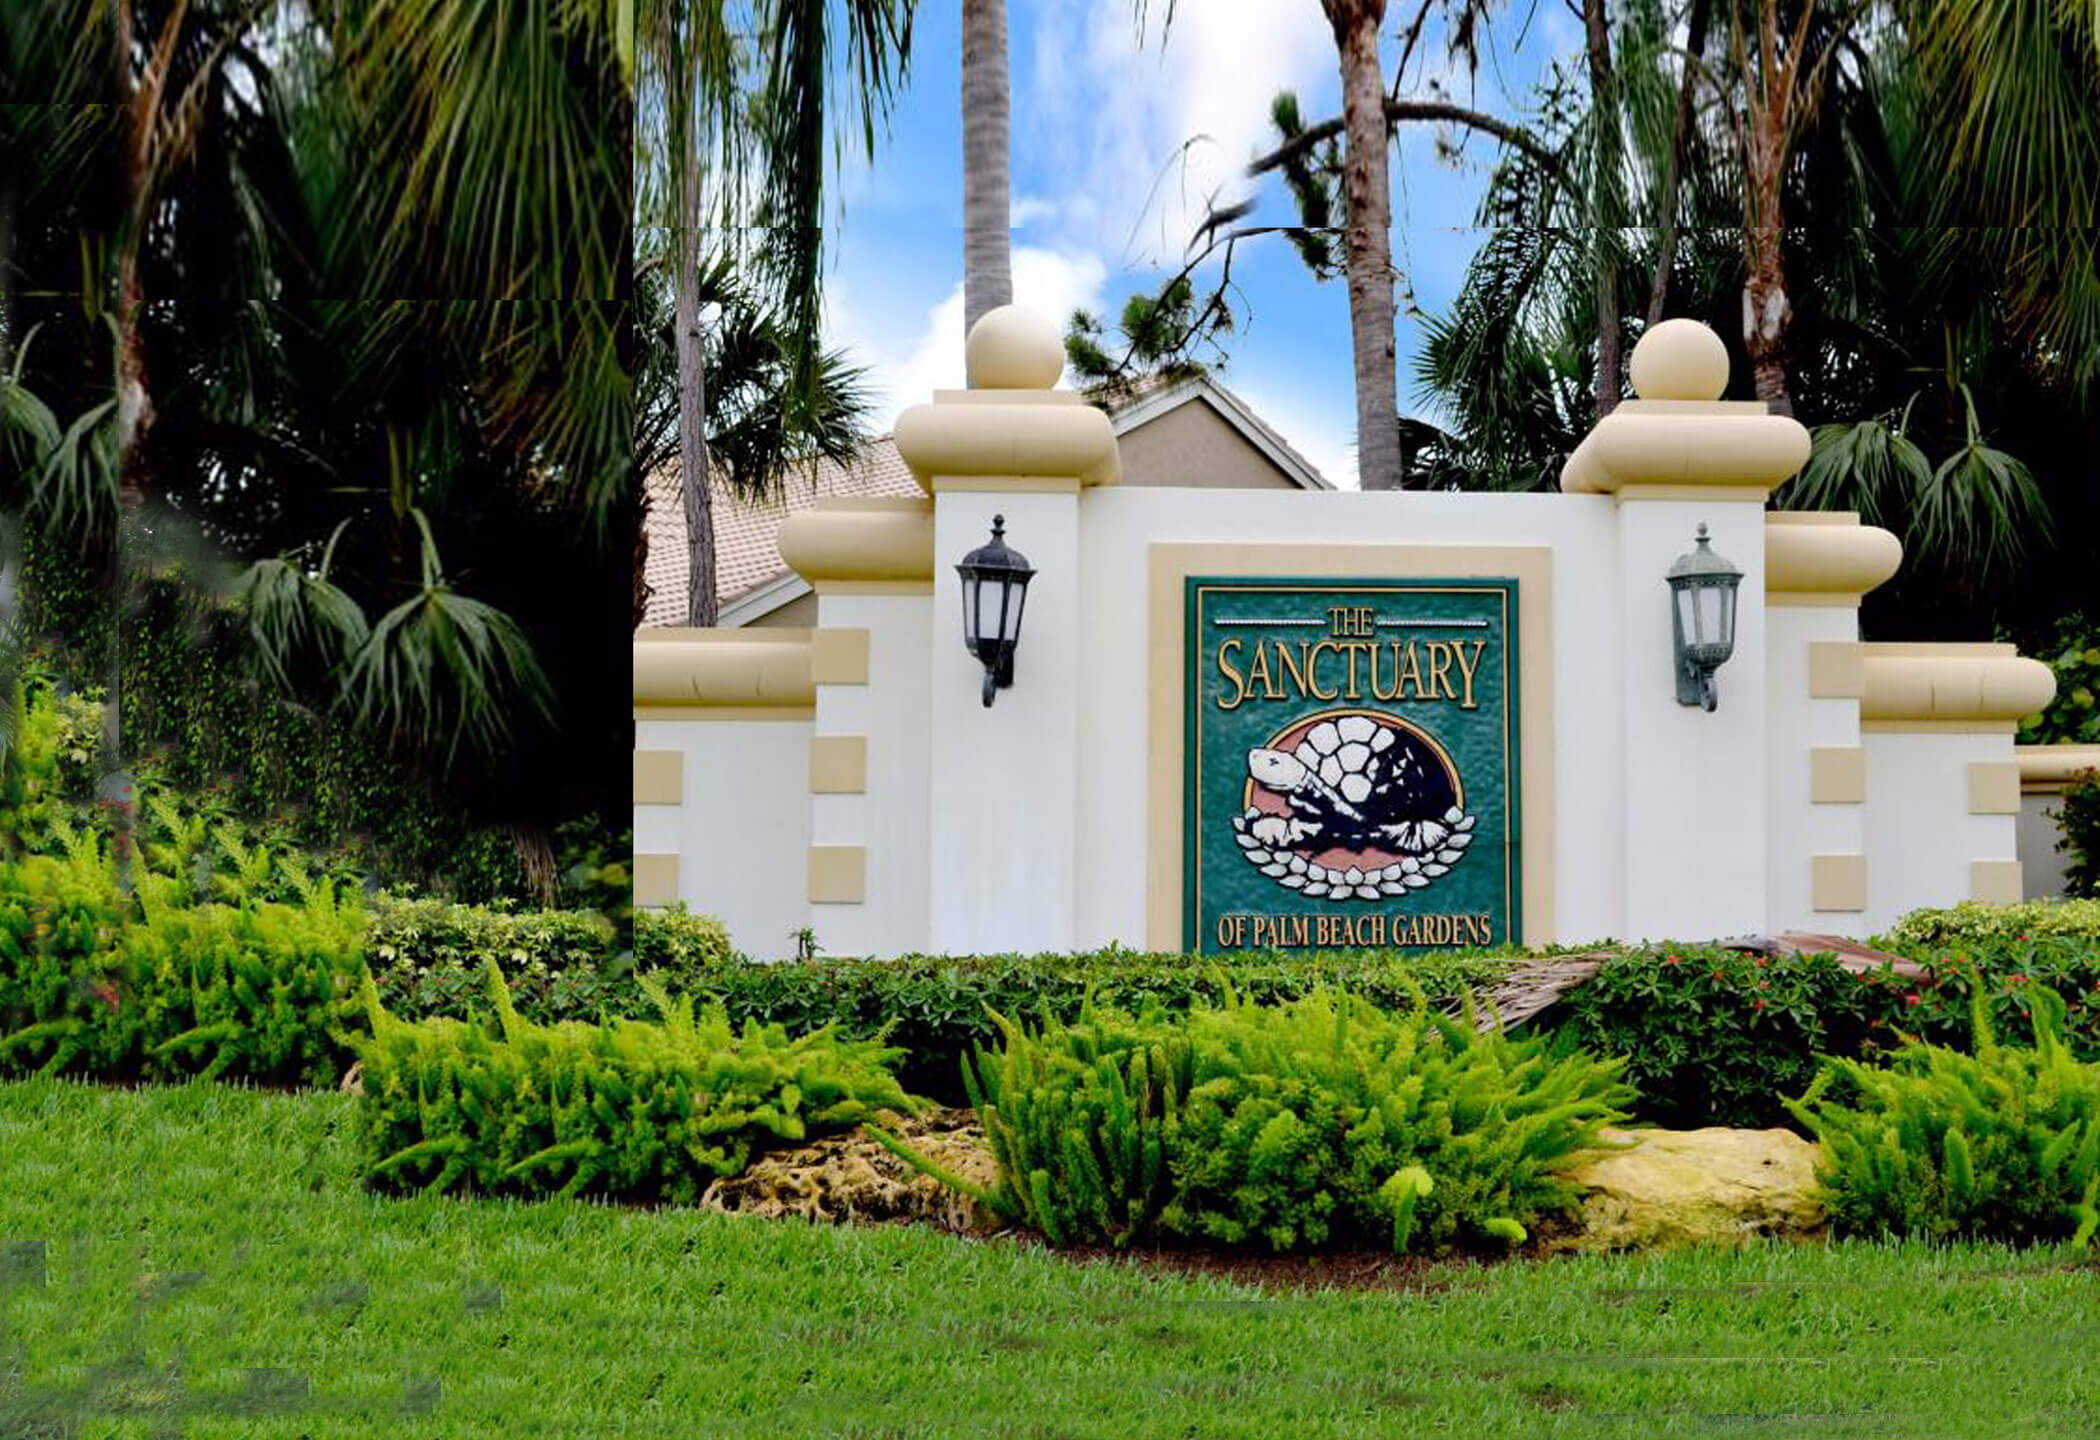 Sanctuary Palm Beach Gardens Homes For Sale